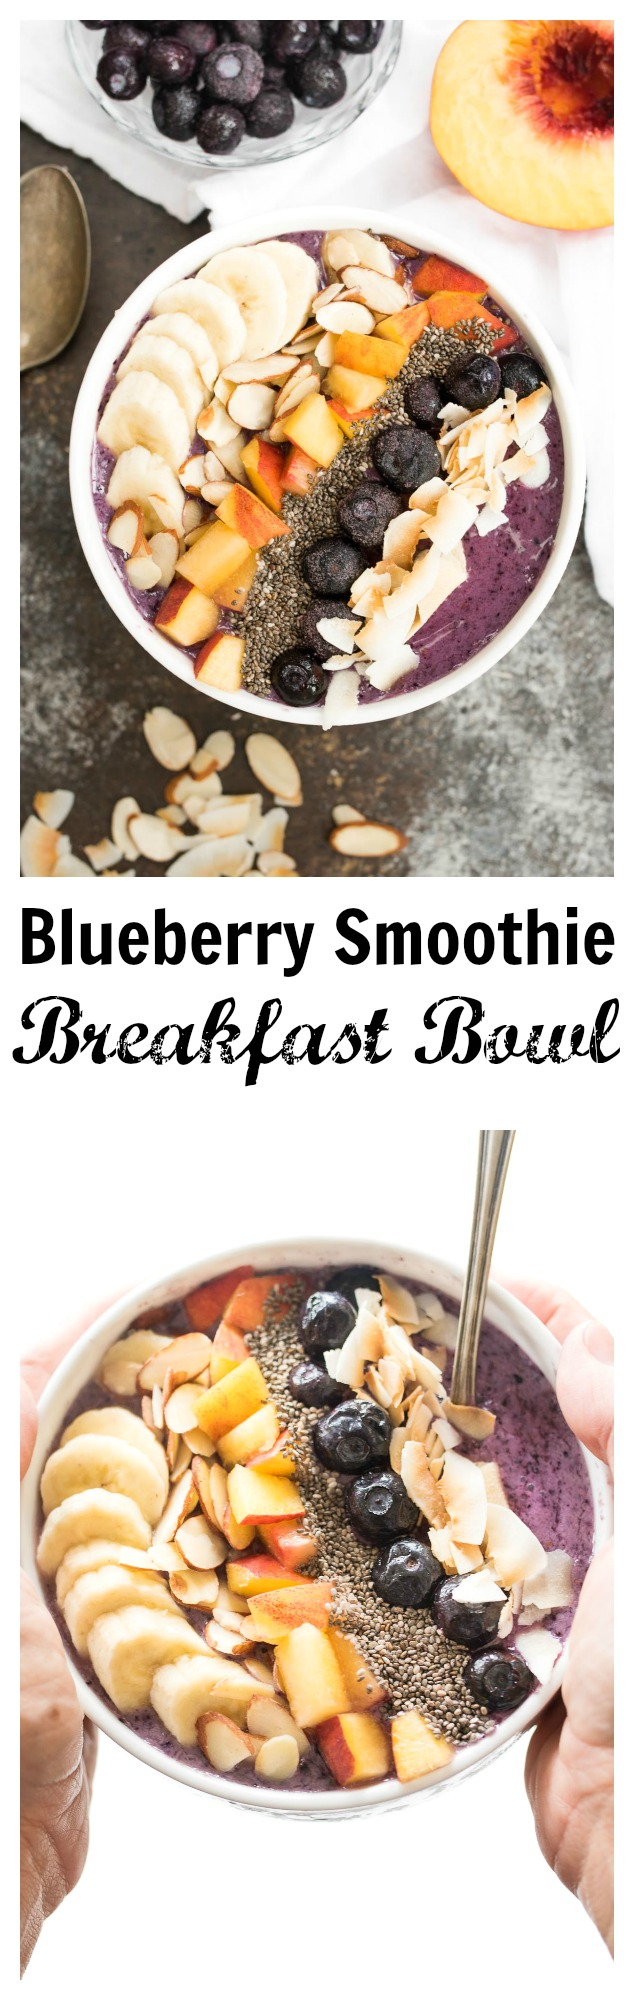 Blueberry Smoothie Breakfast Bowl- a delicious and nourishing bowl that is gluten free, plant based and great for any meal! #ad | www.nutritiouseats.com